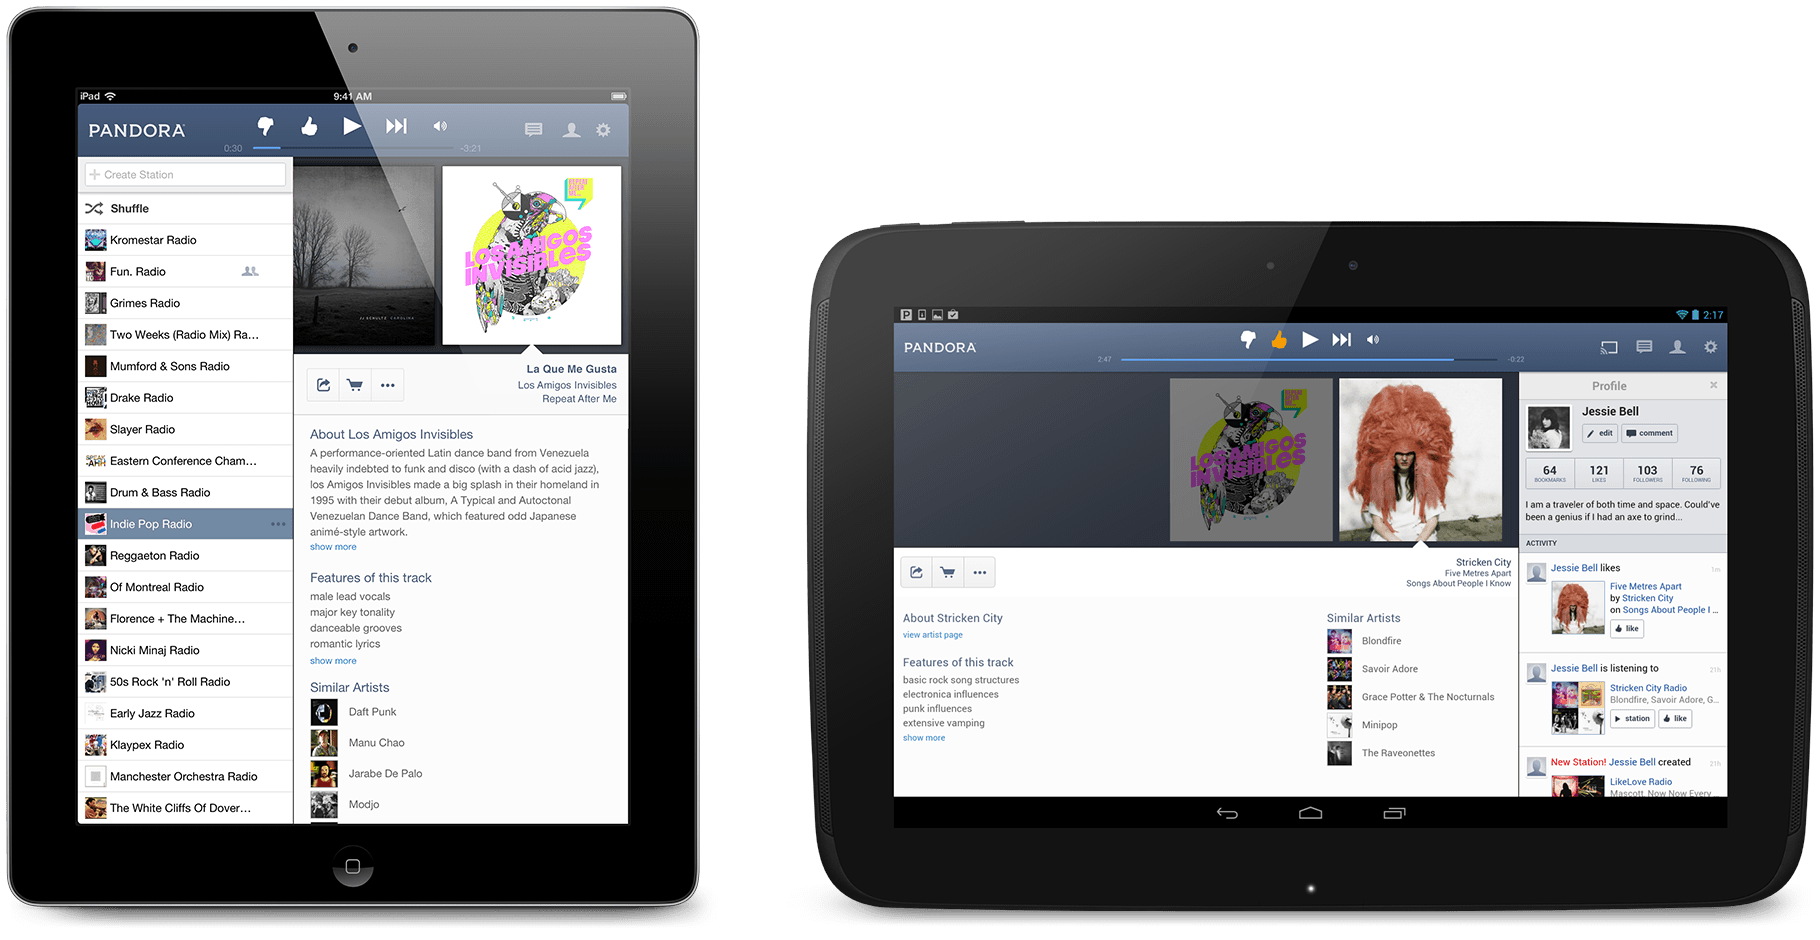 Pandora radio the best pandora experience for your ipad or android